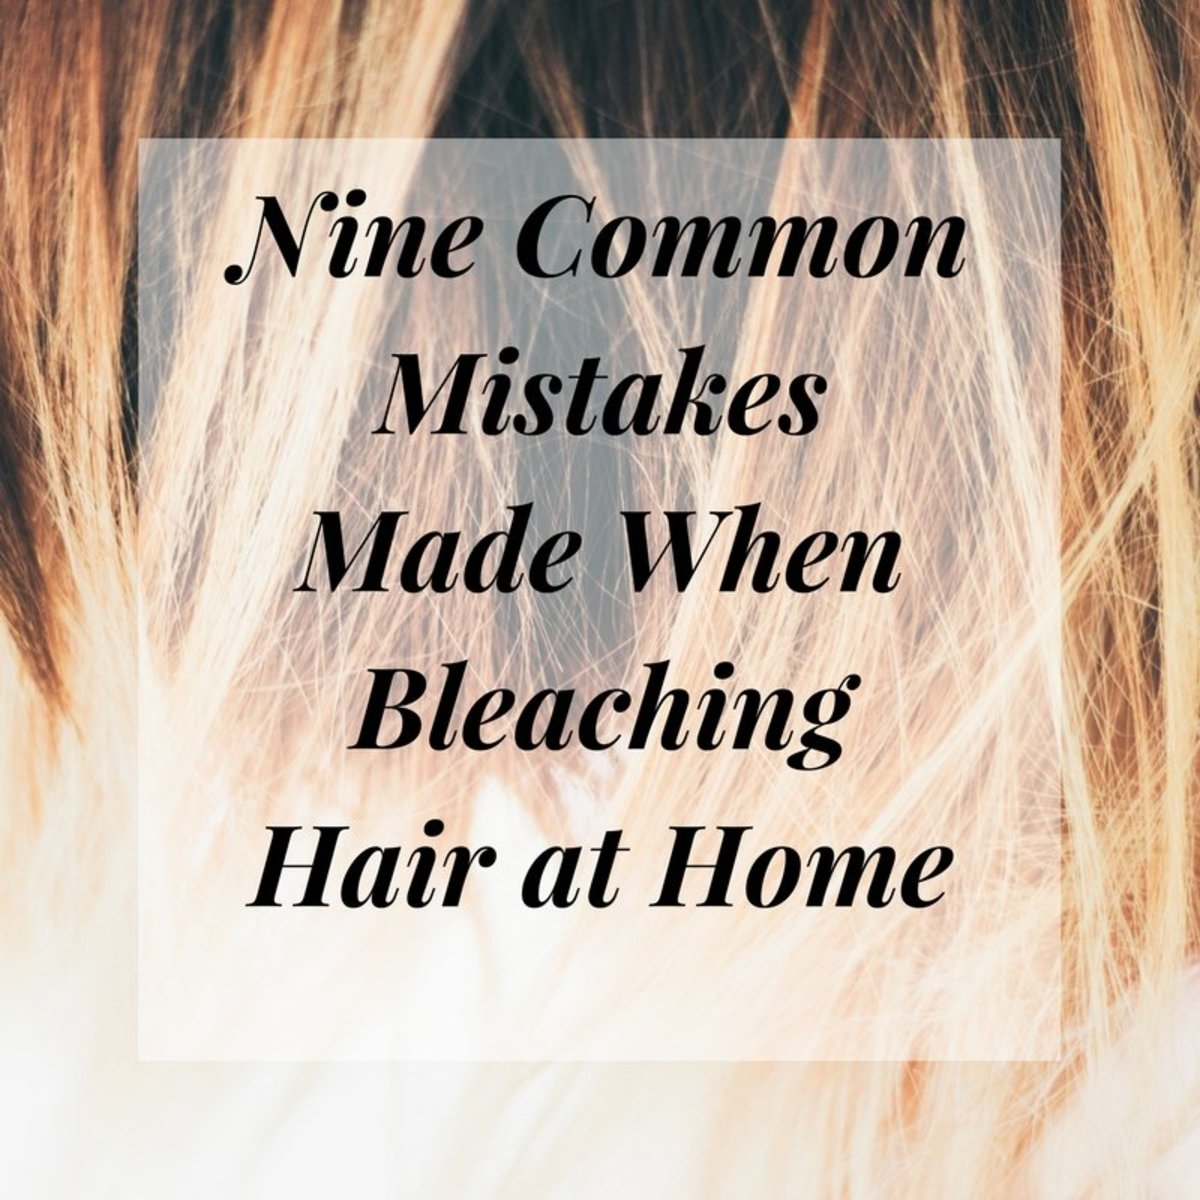 If you've opted to bleach at home rather than at the salon, be sure to avoid these nine rookie mistakes that many people make when they try to lighten their own hair.